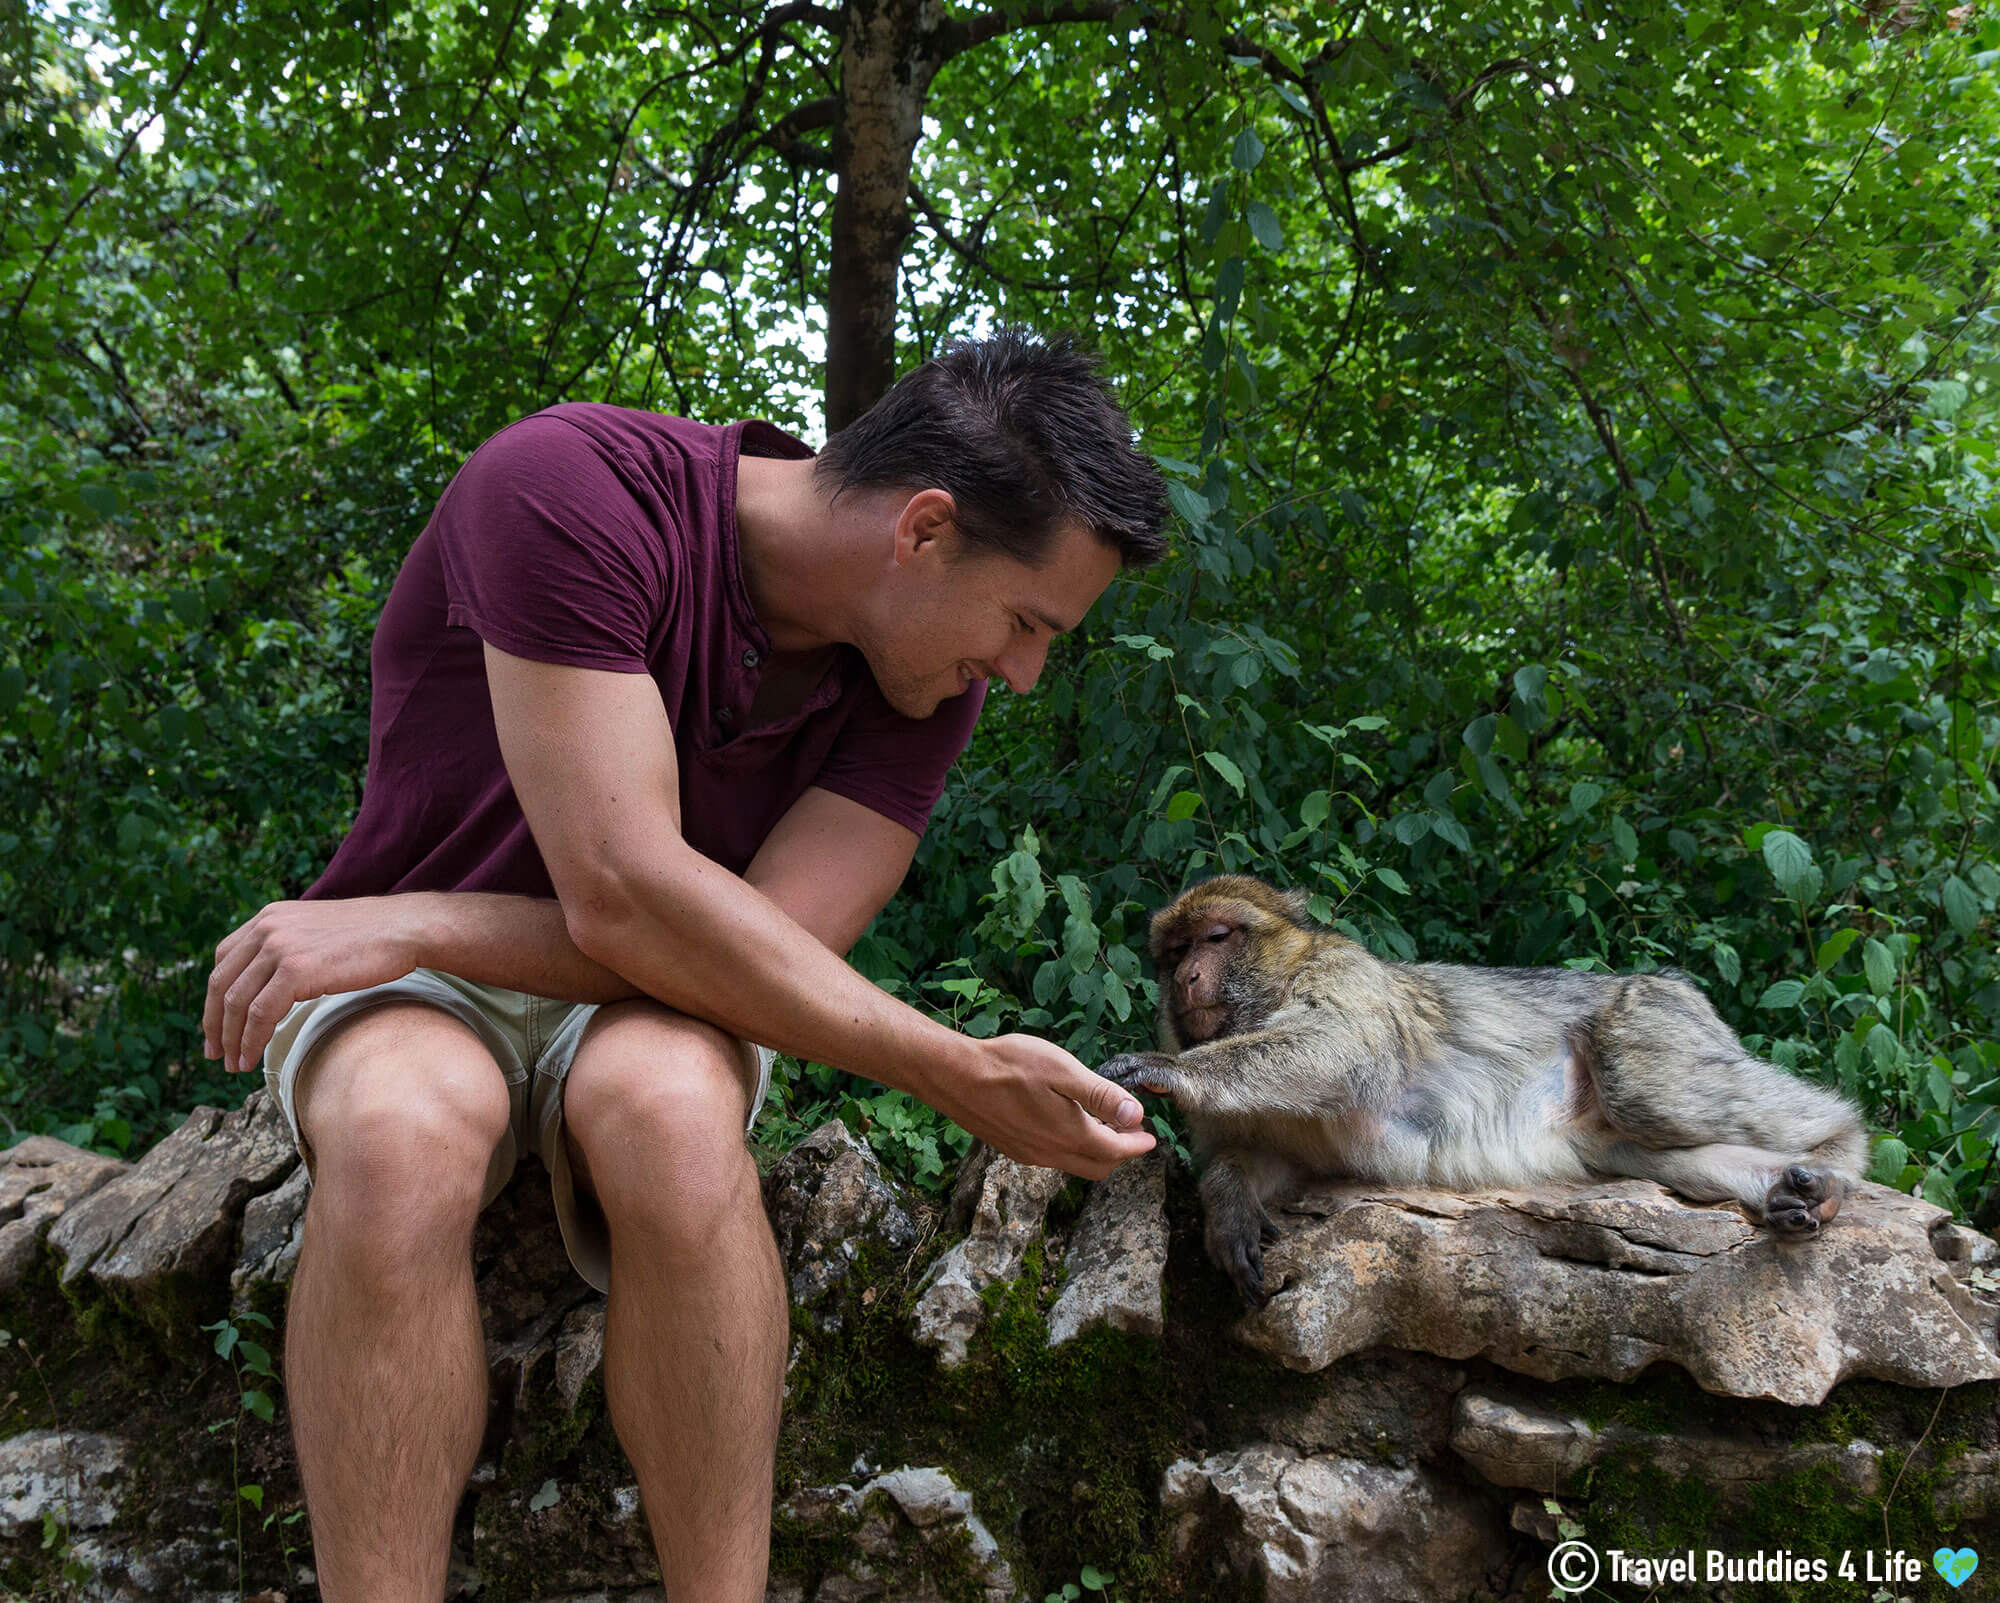 Joey Feeding A Monkey in the Monkey Centre in Southern France, Europe